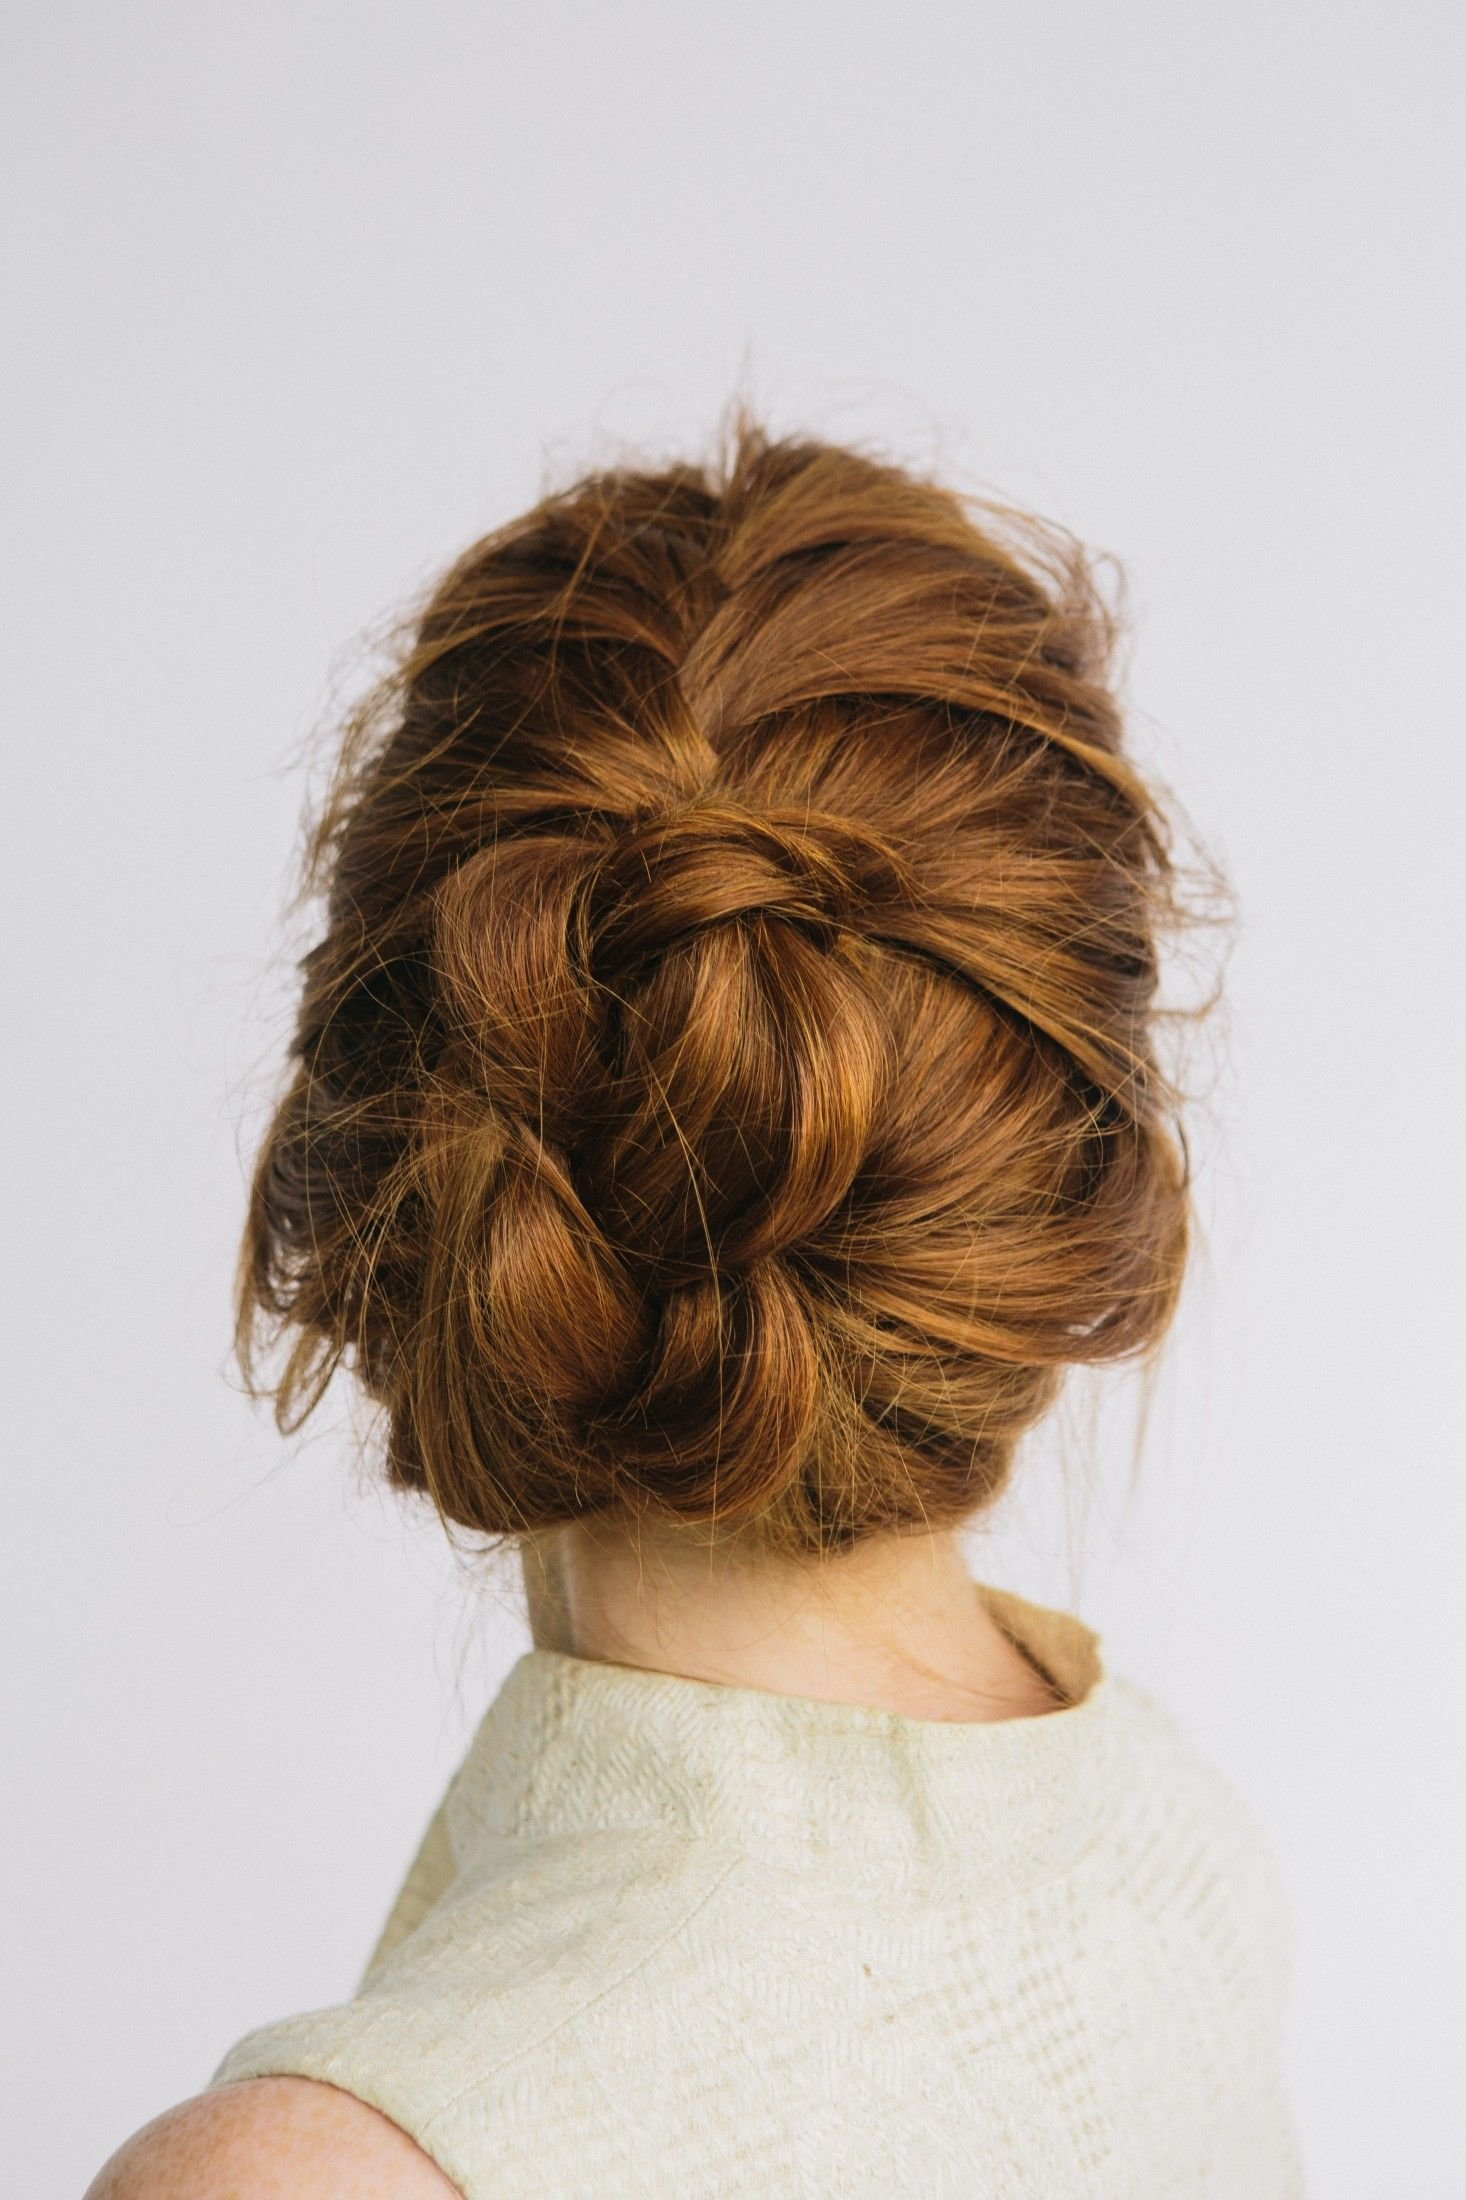 The Best How To Braided Bun With L'oreal Paris Advanced Hairstyle Pictures